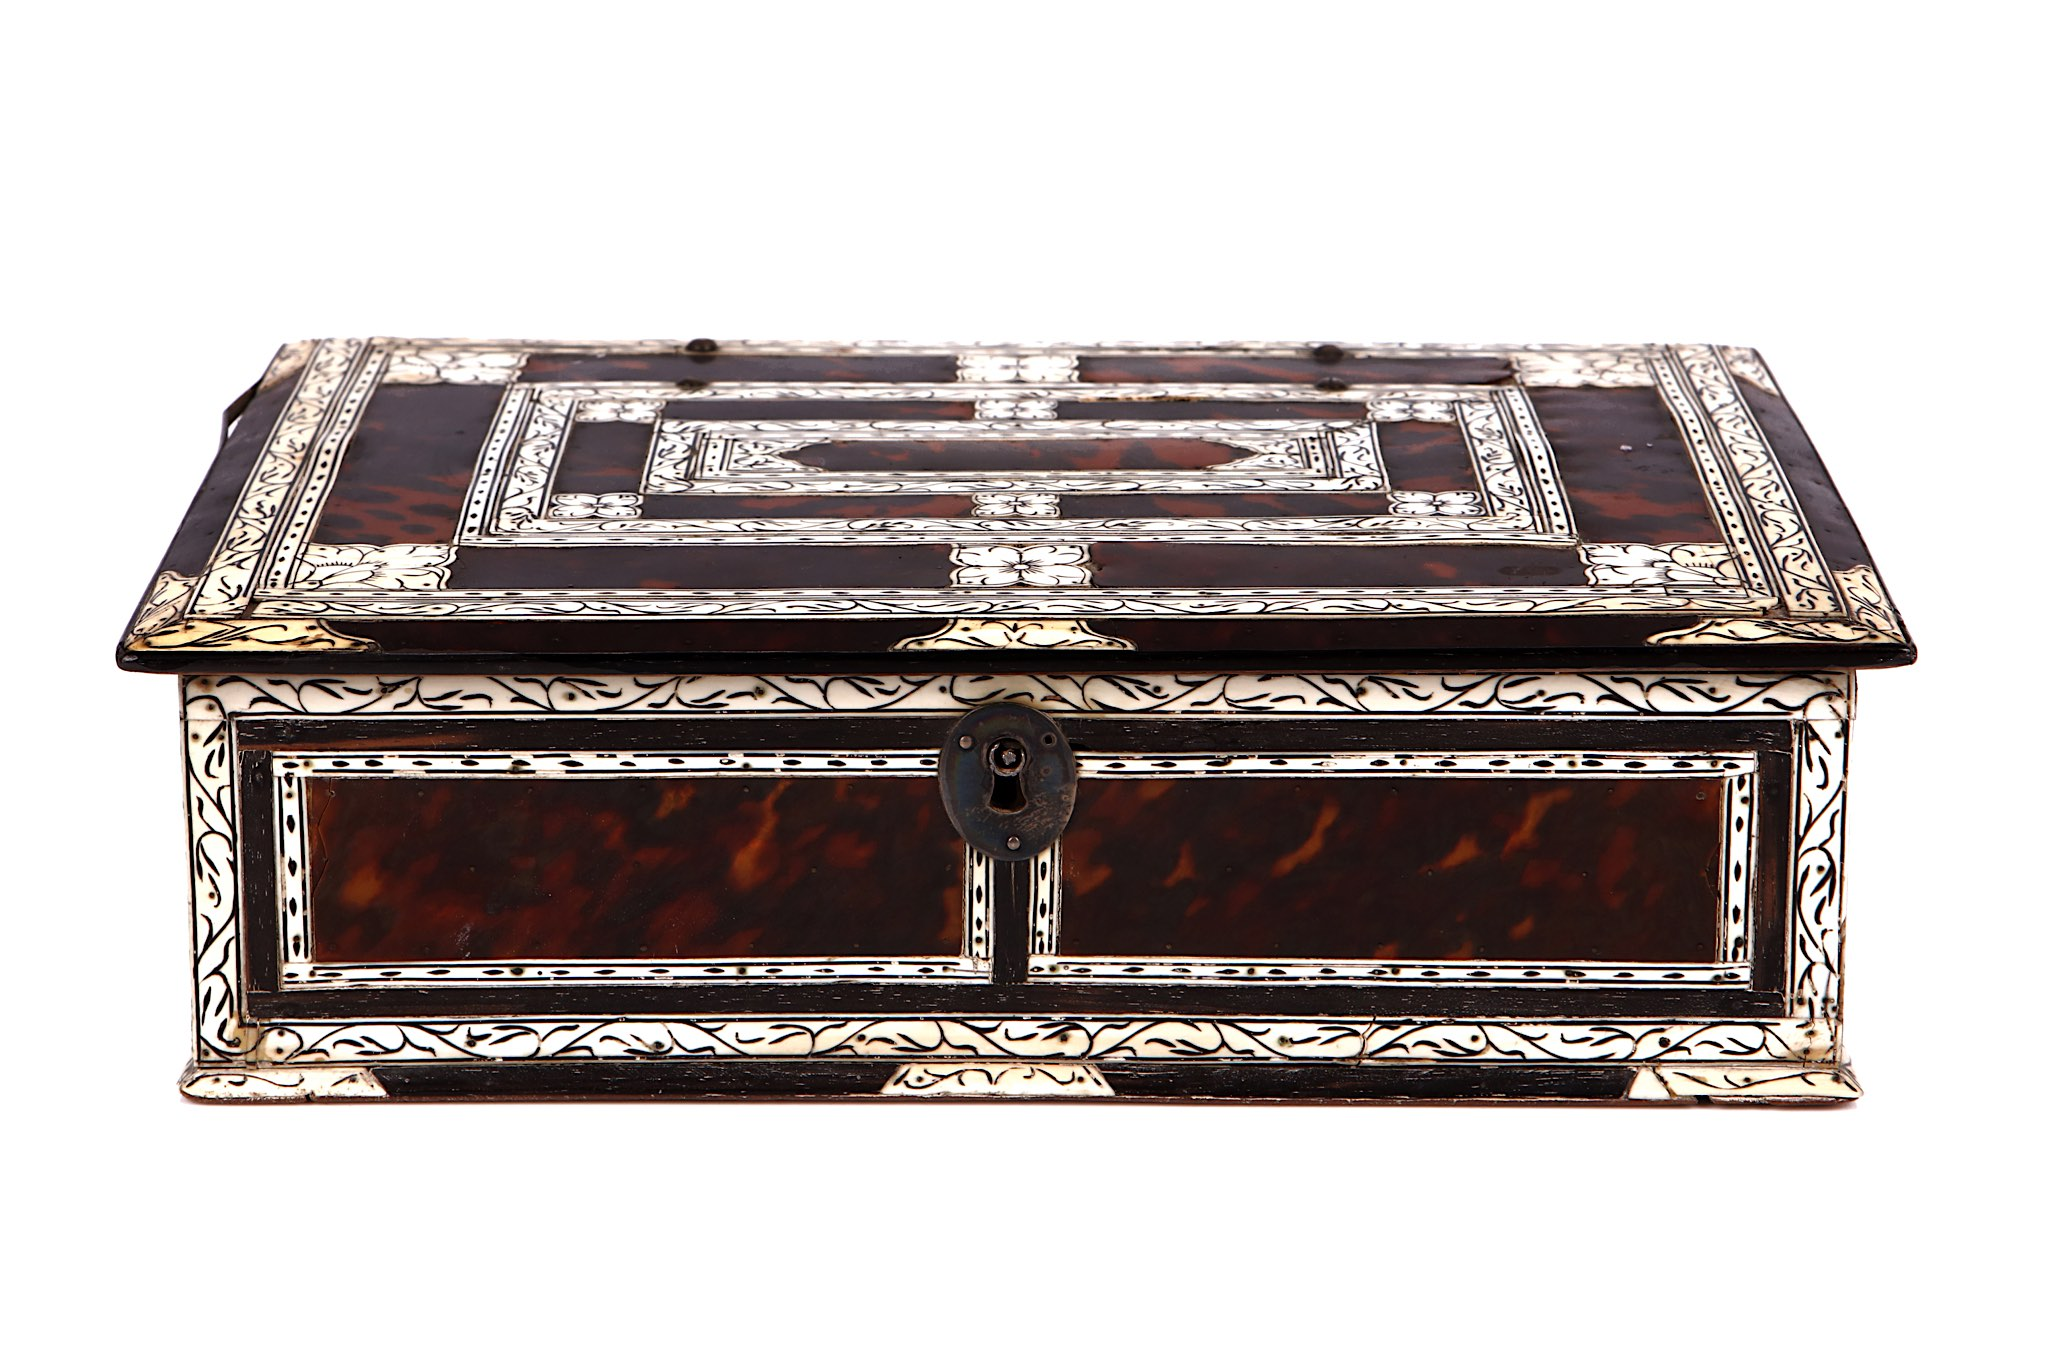 Lot 82 - AN 18TH CENTURY INDO-PORTUGUESE TORTOISESHELL AND IVORY WRITING BOX of rectangular form, with